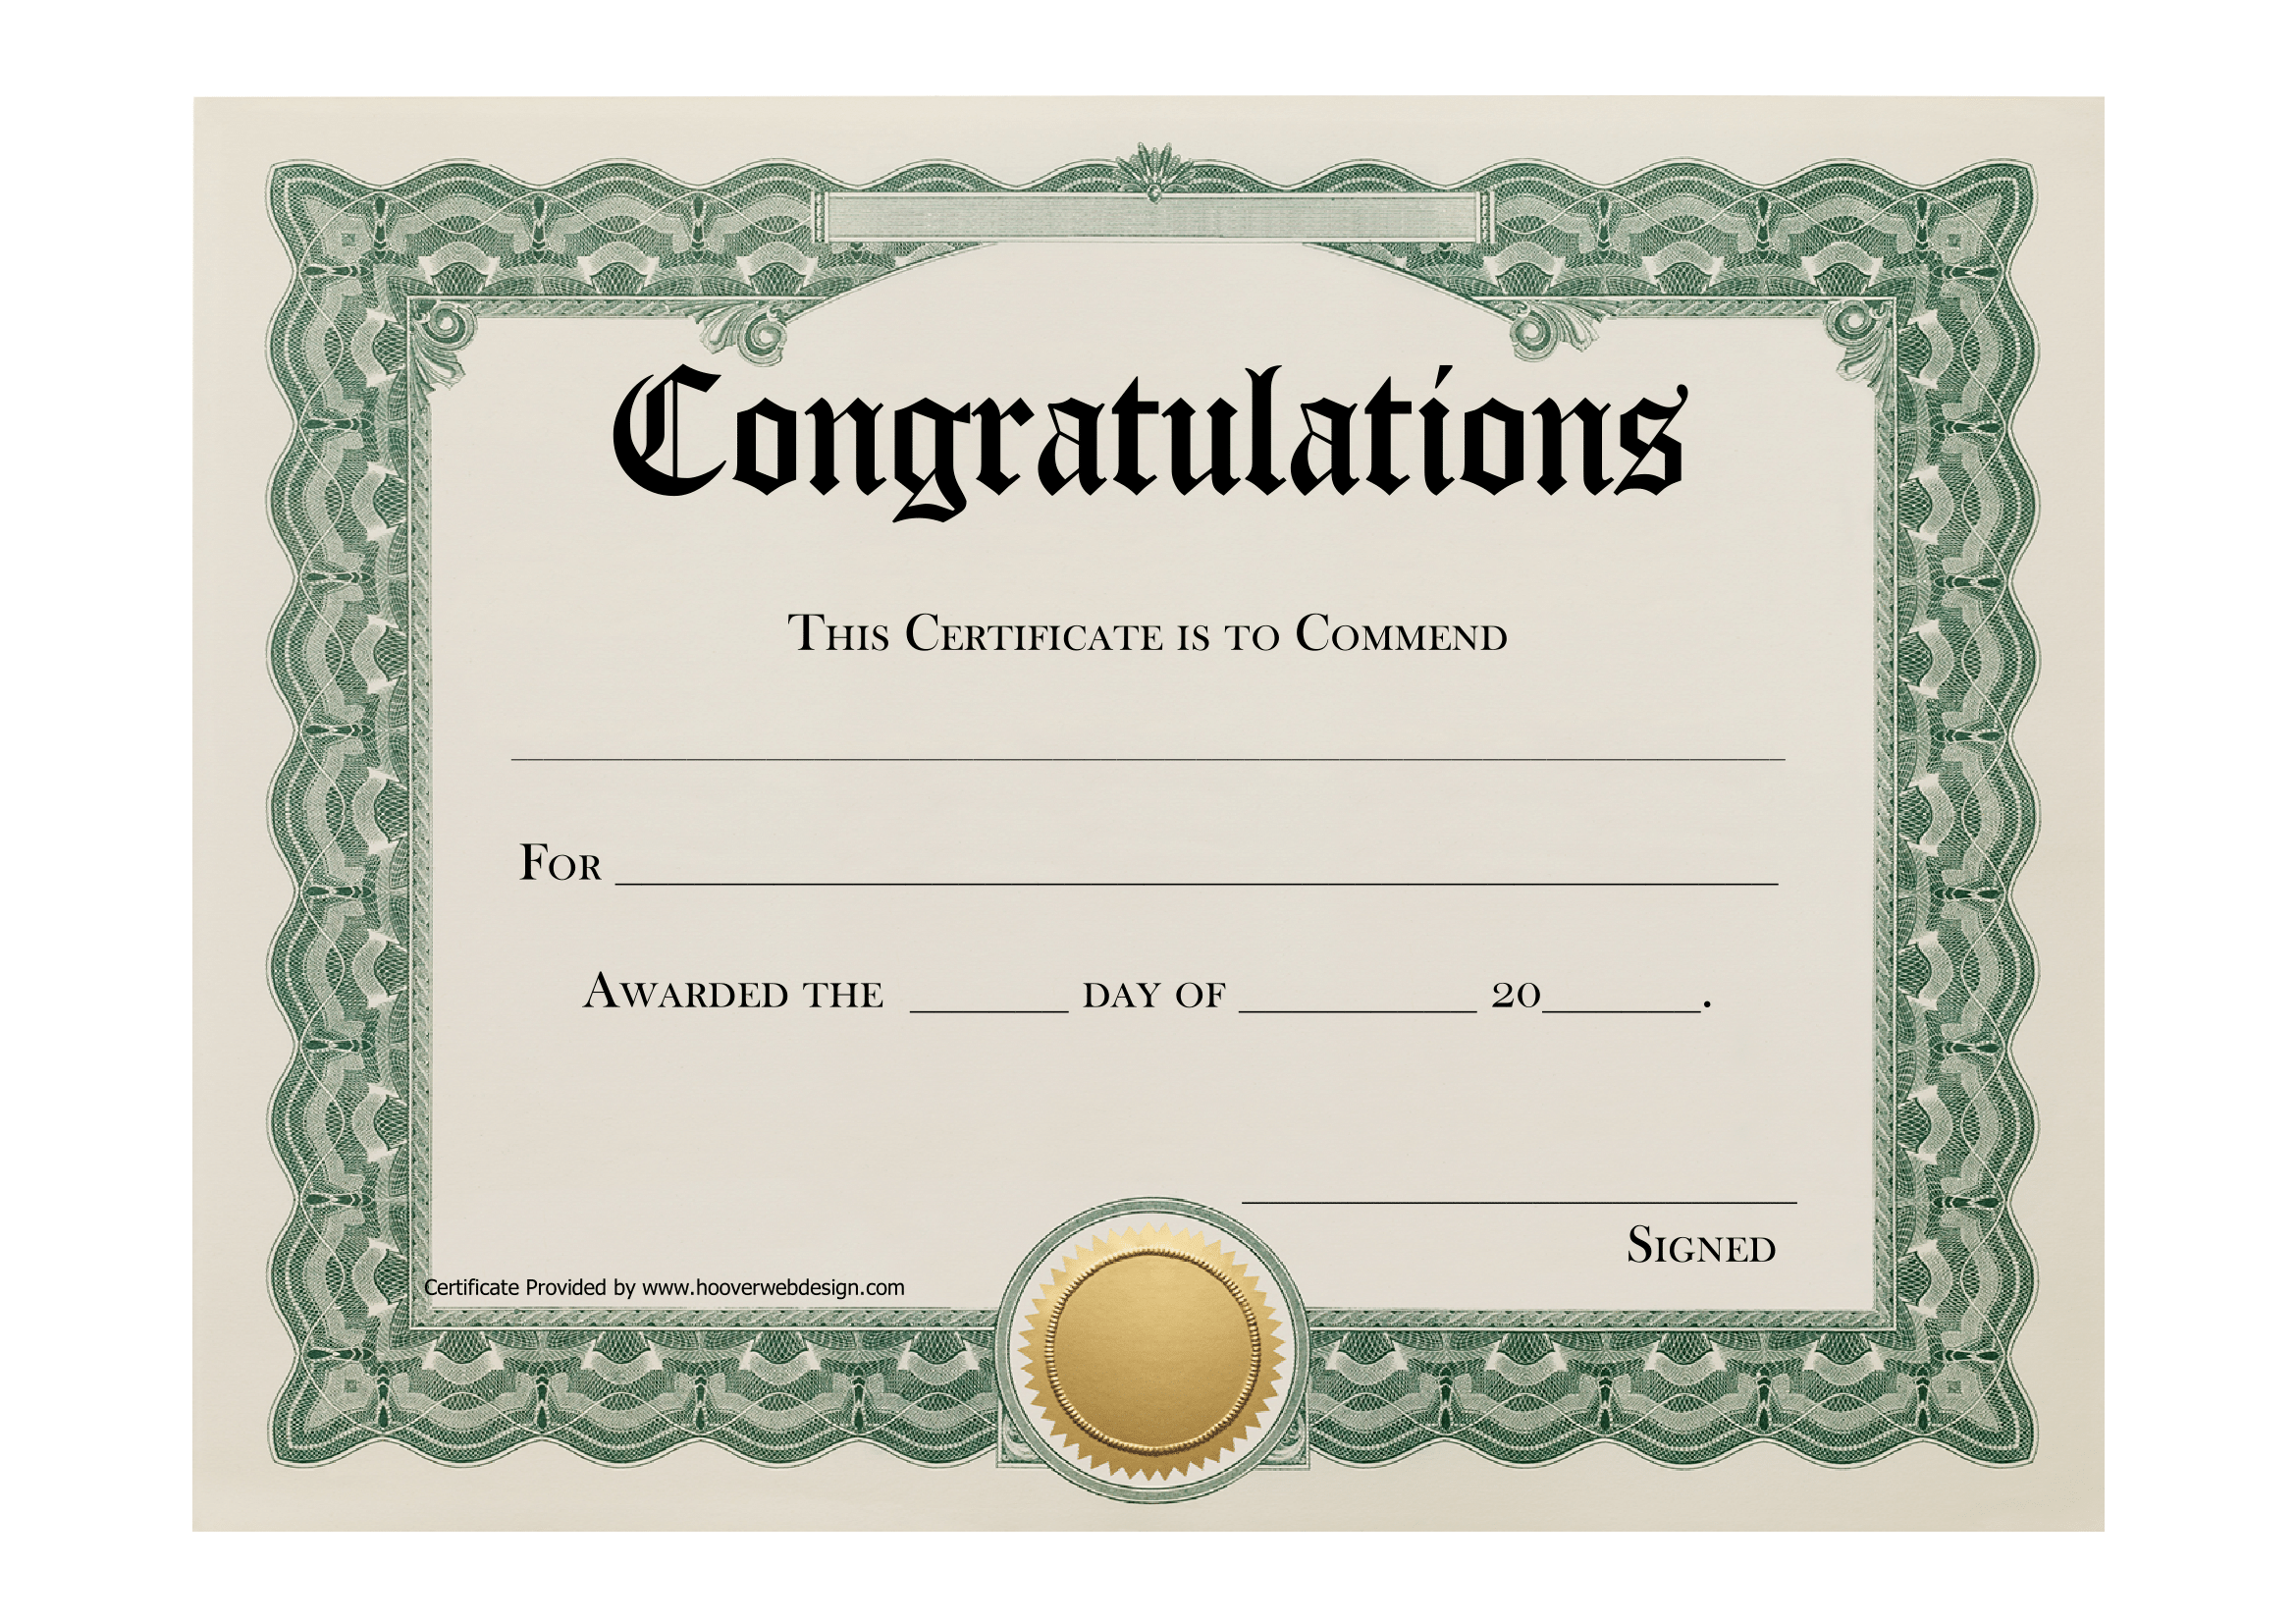 Congratulations Certificate Template FREE Download – Academic Certificate Templates Free